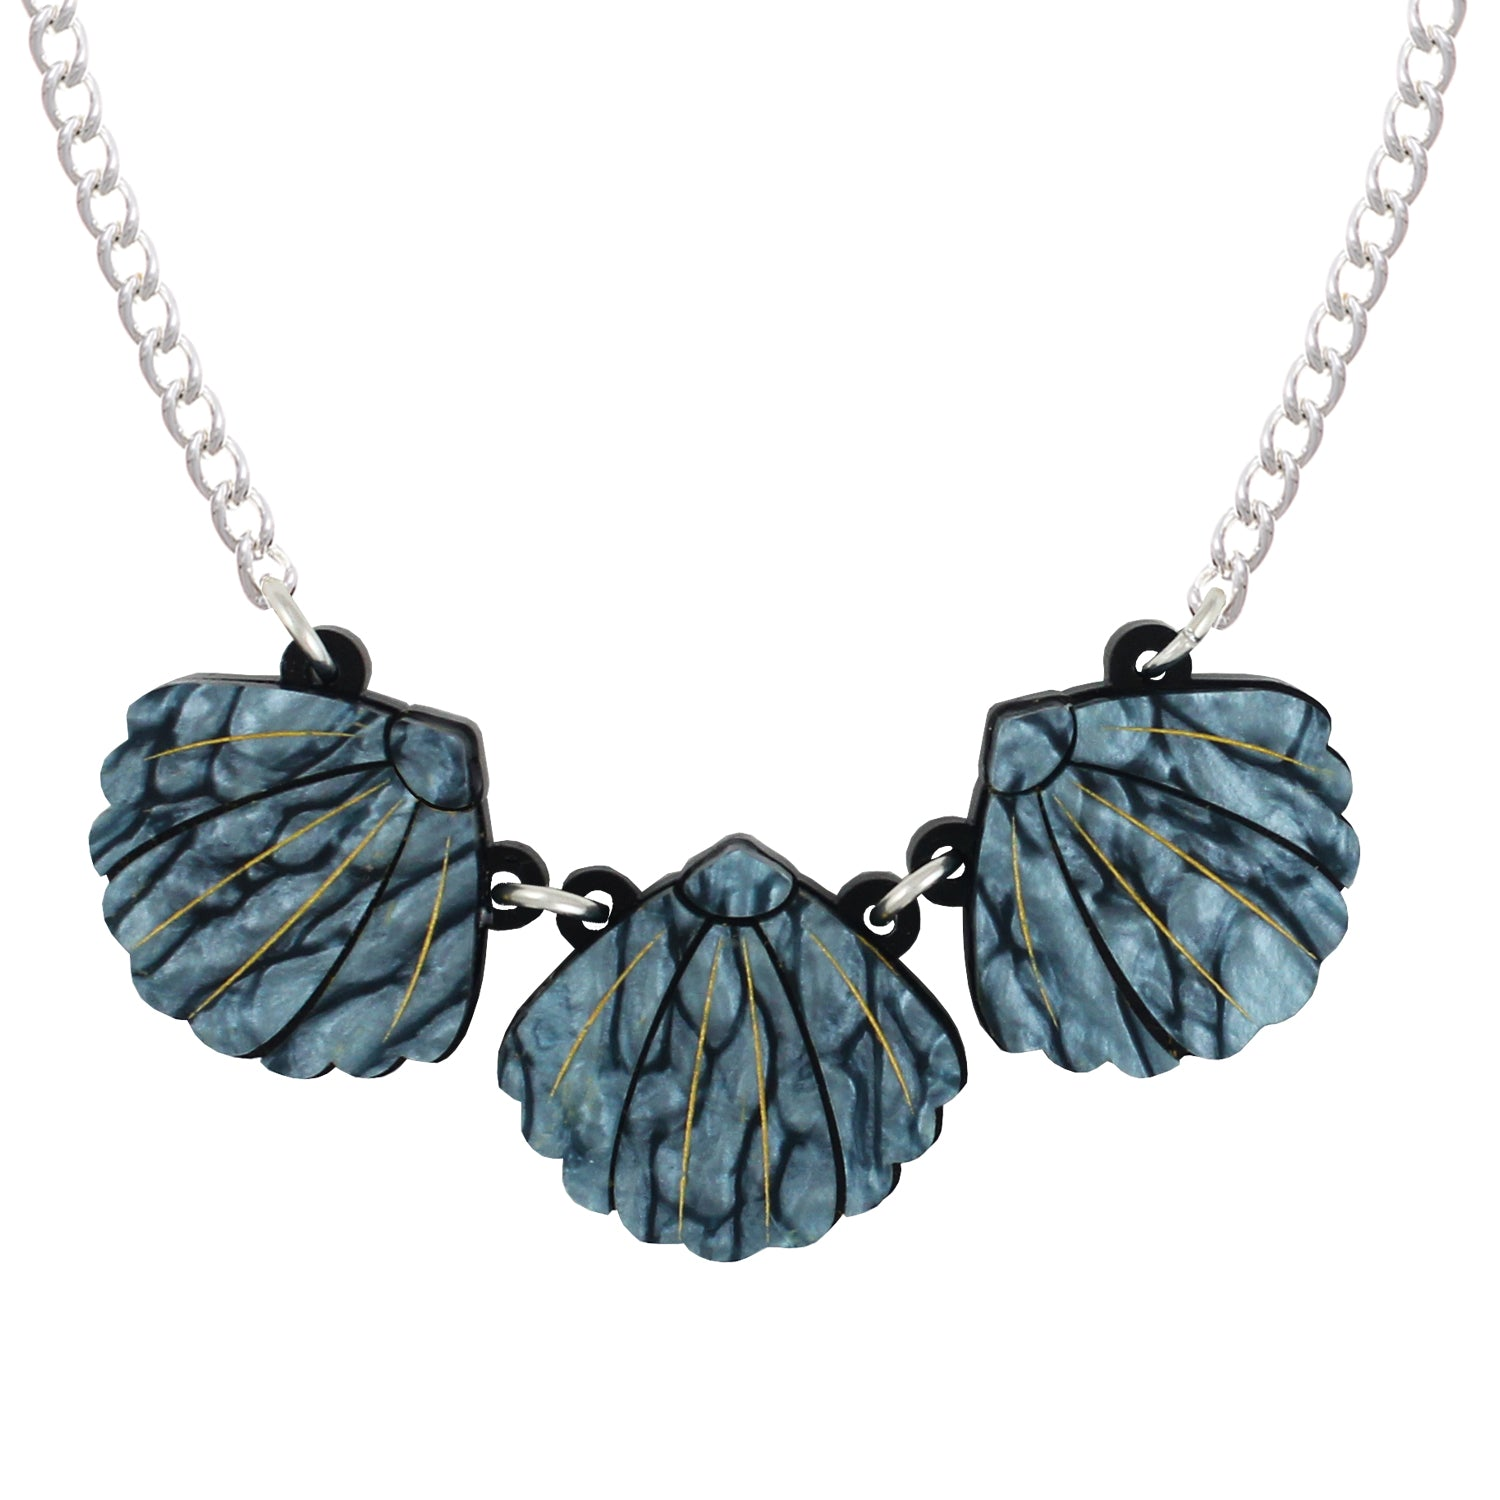 Triple Blue Shell necklace